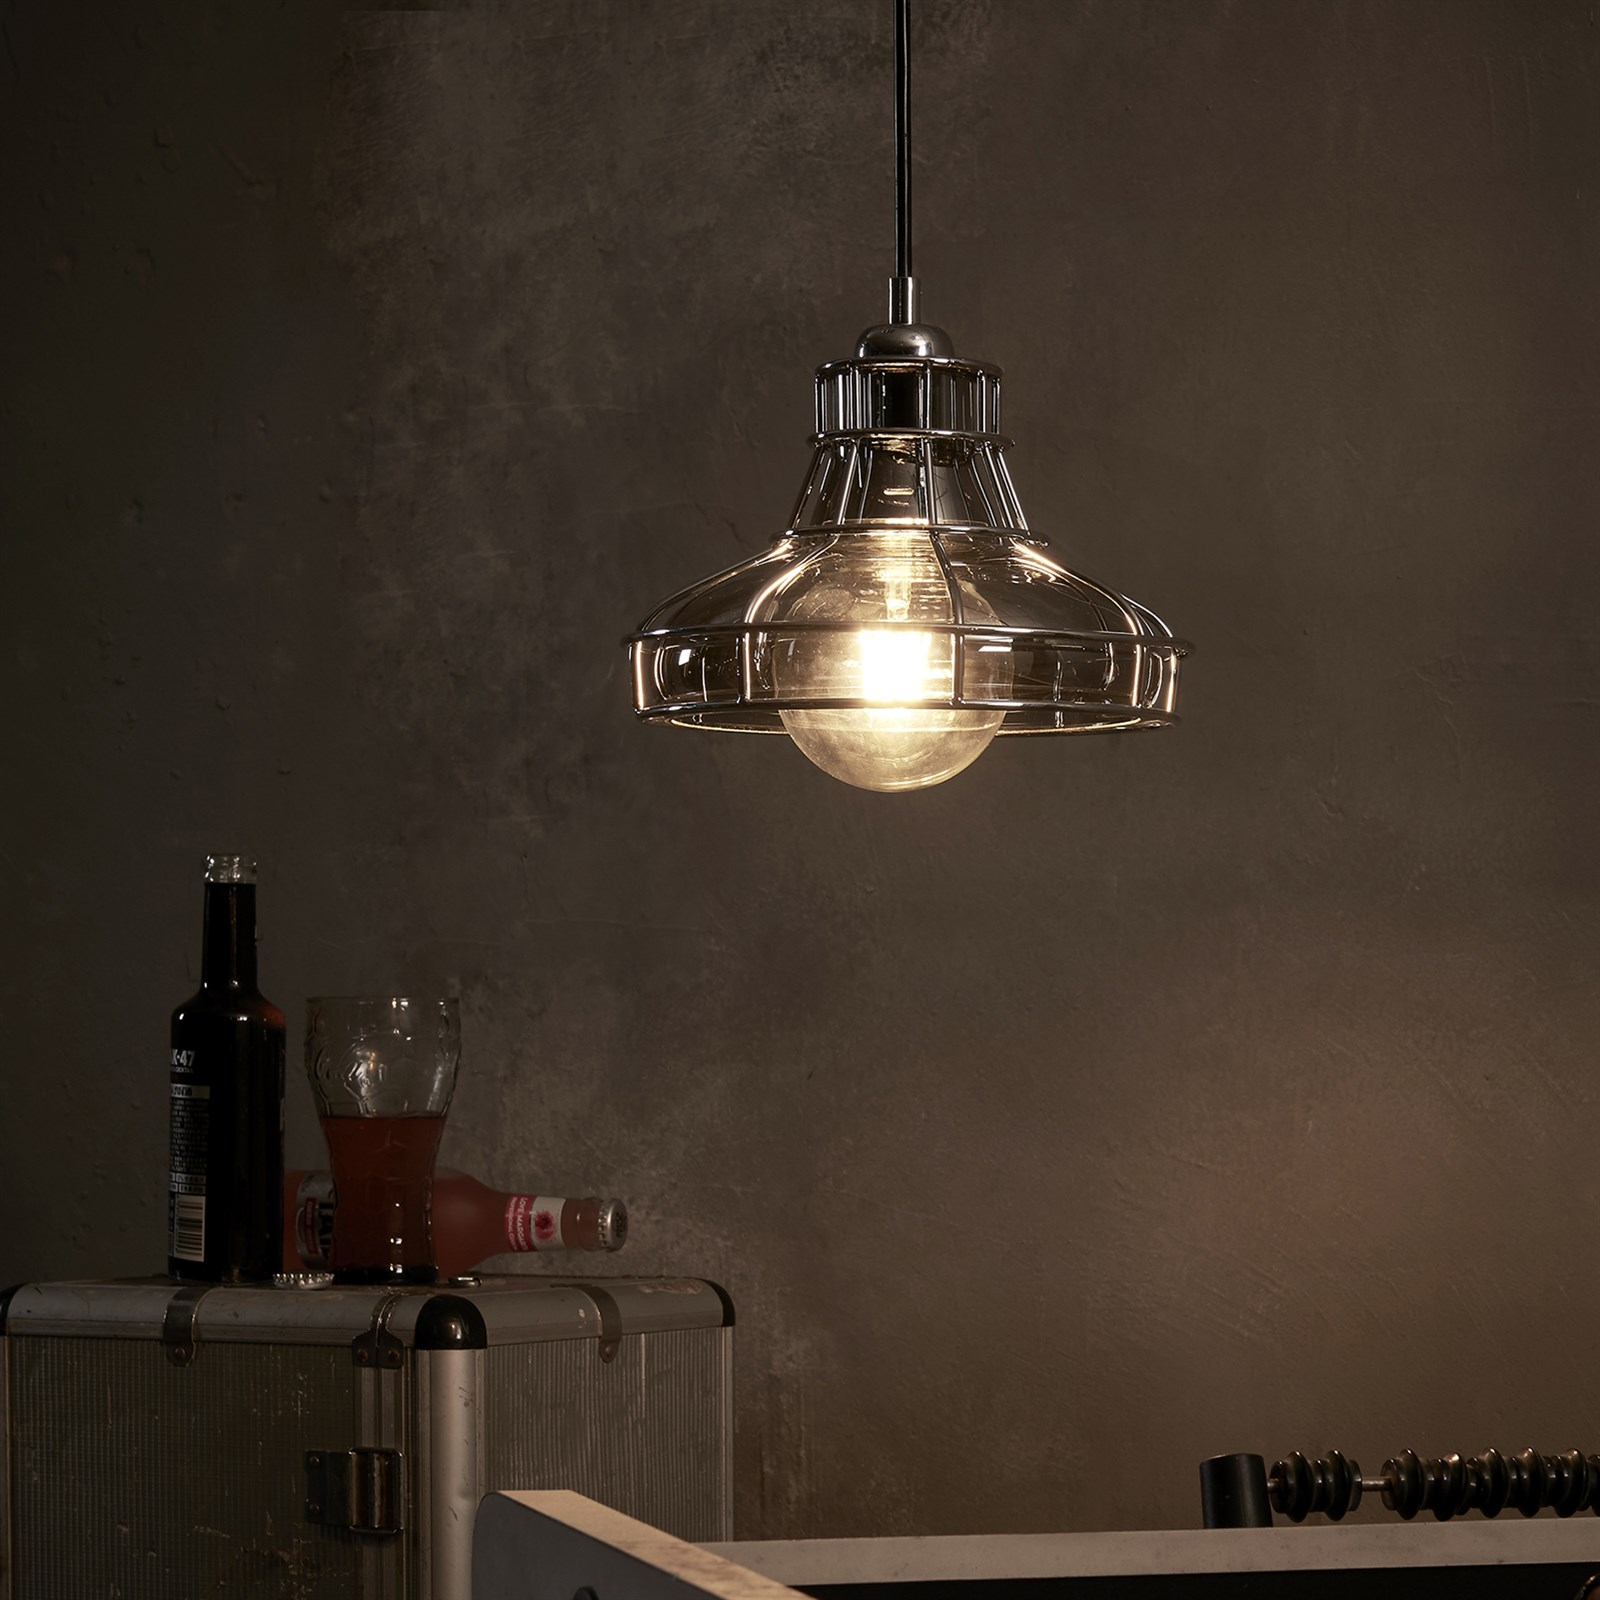 Illusione Metal Pendant Lamp with Cage / Free Shipping Only $32.99